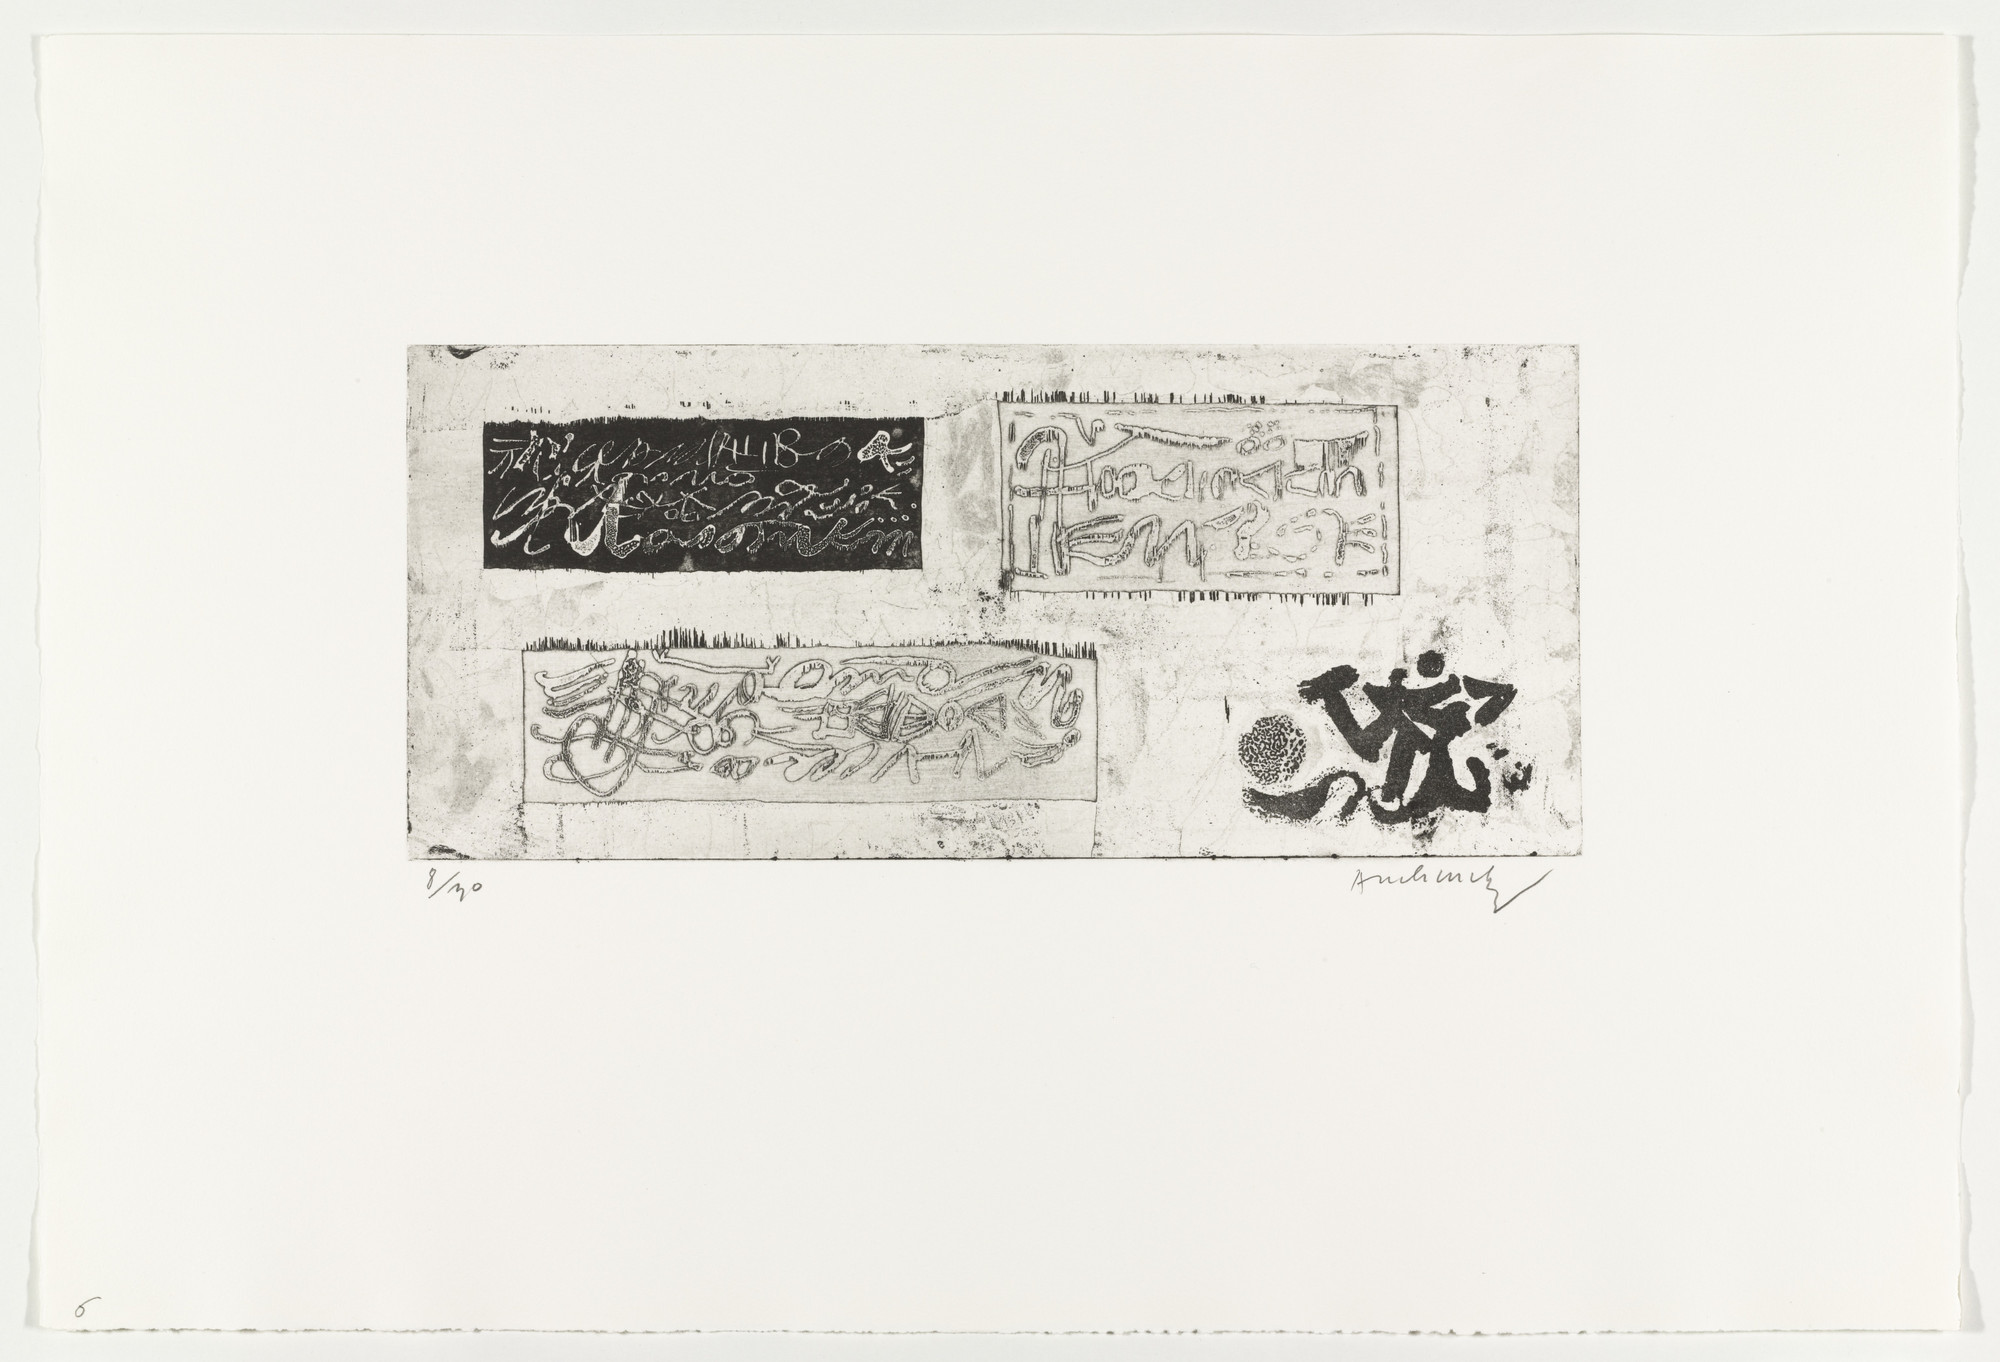 Pierre Alechinsky. Writings (Écritures) from Hayterophilies. 1968 (plate executed 1952)